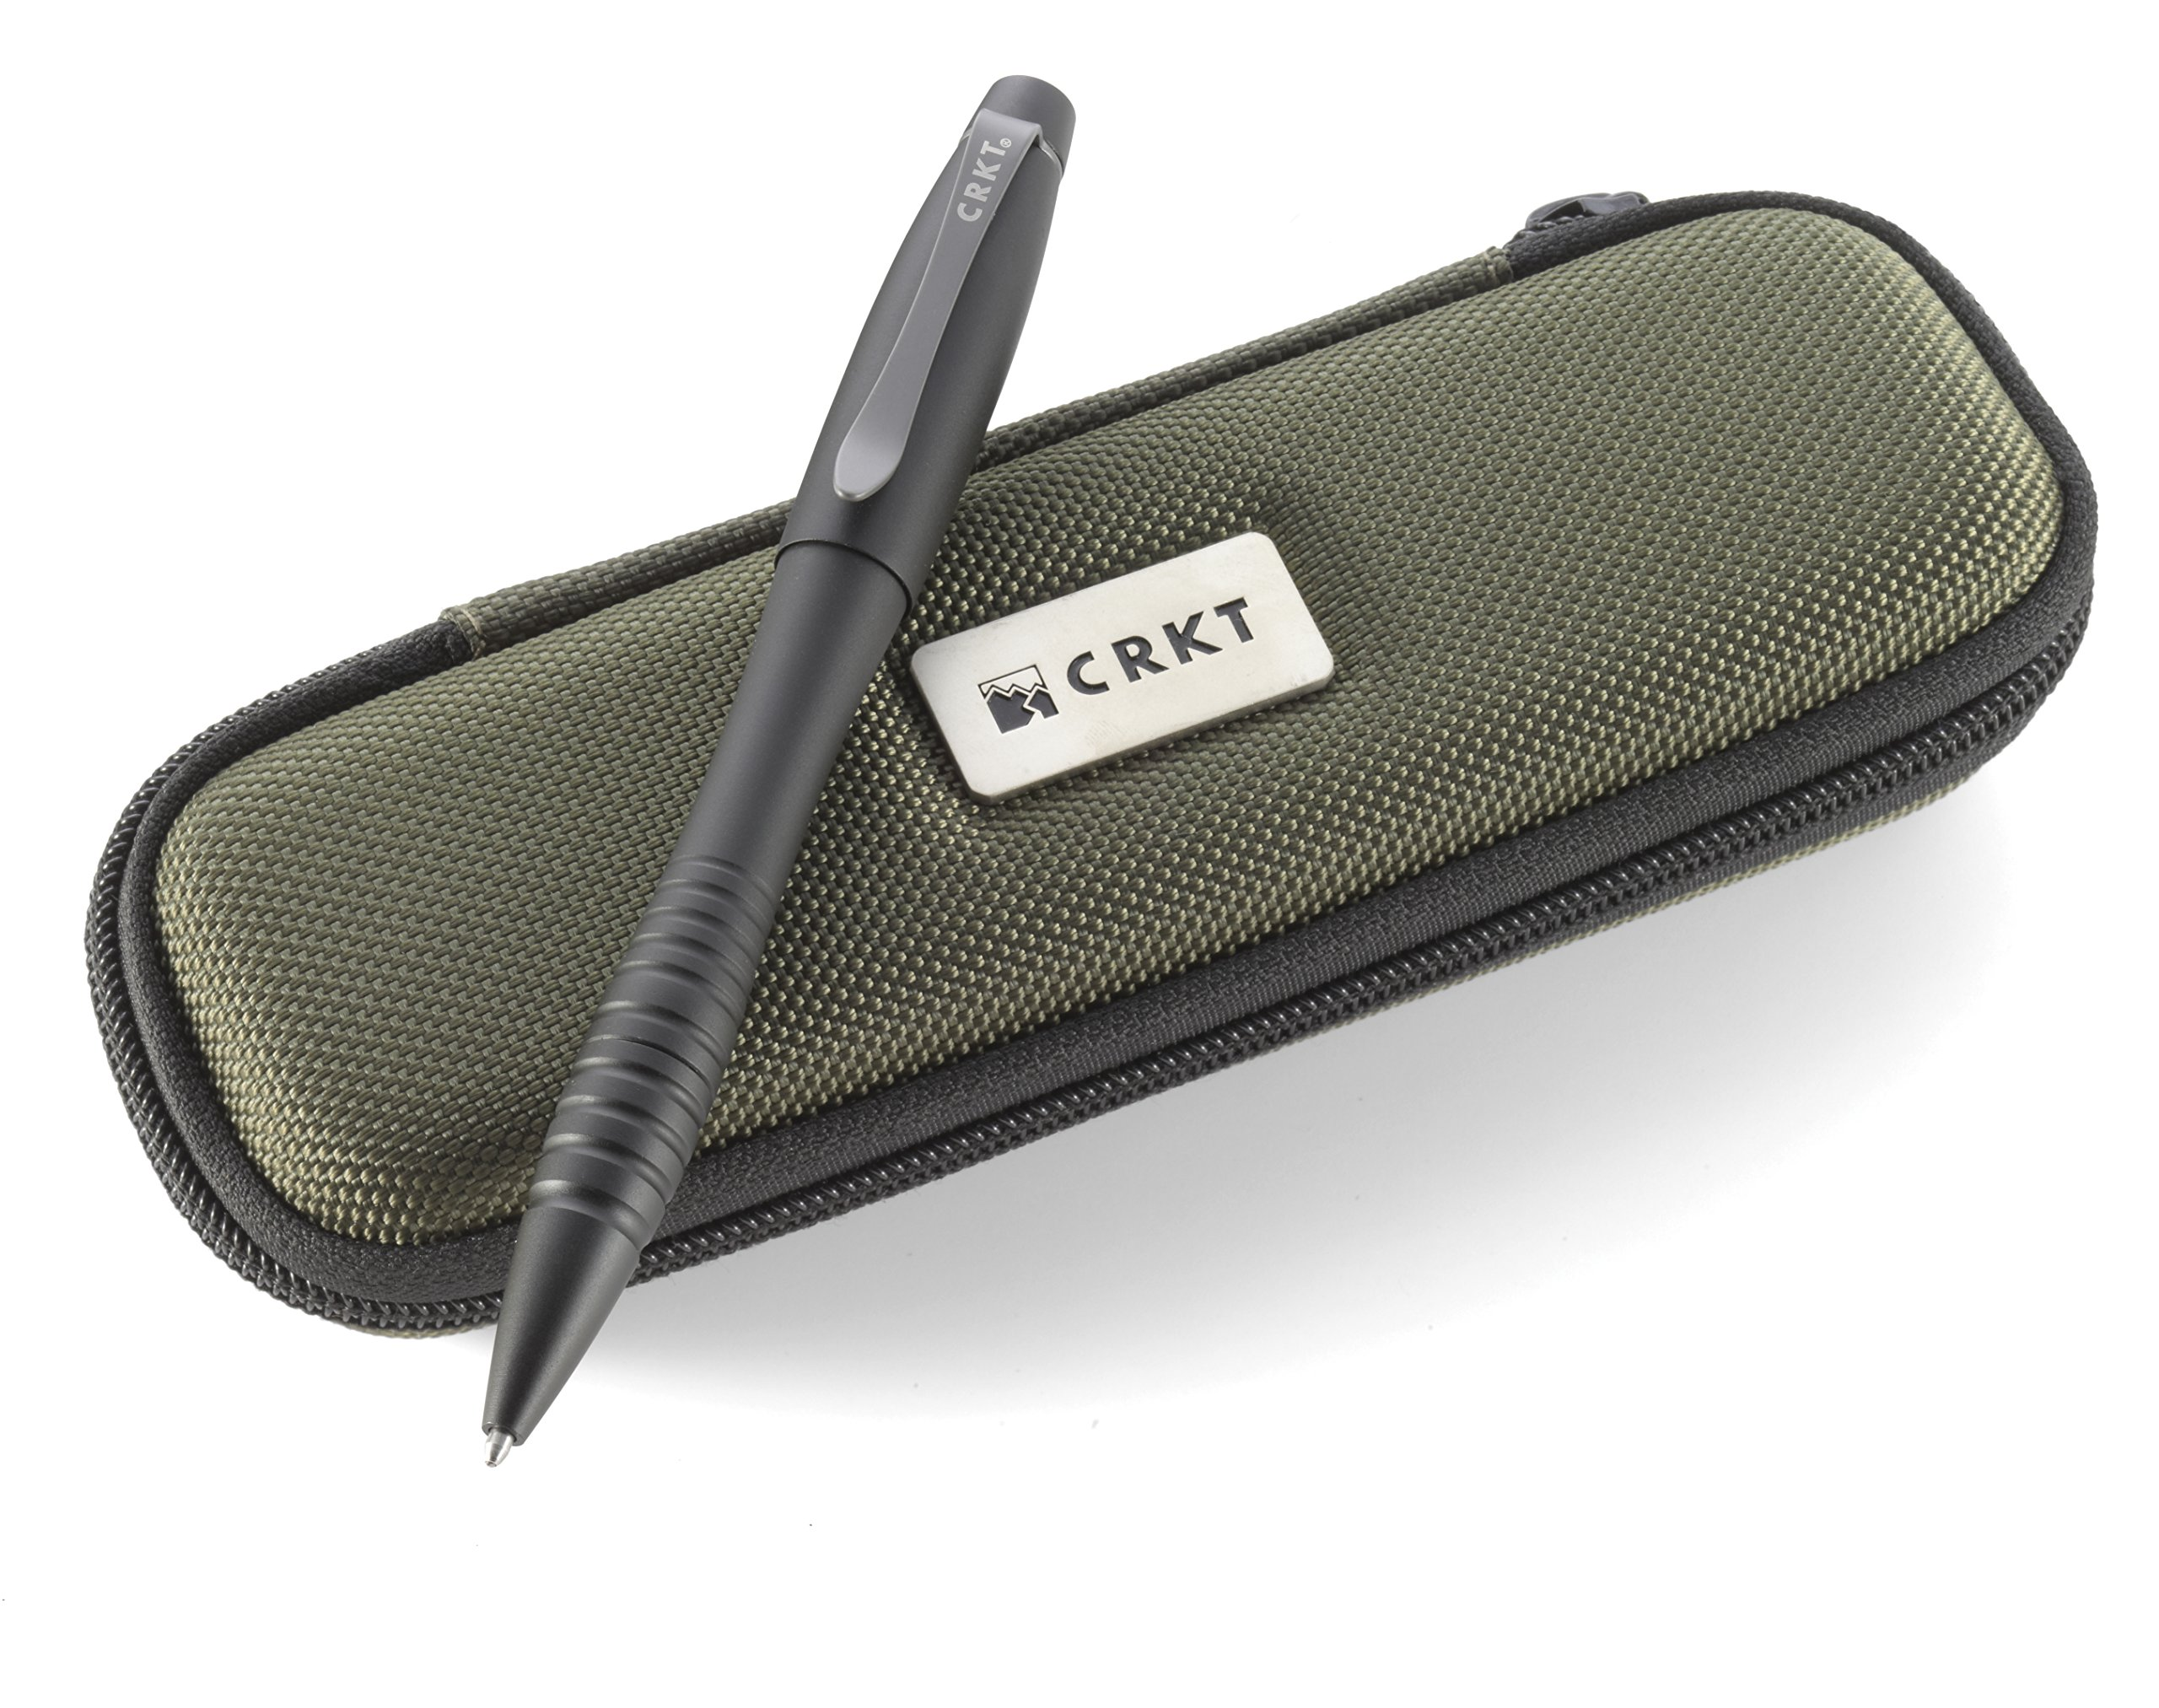 CRKT Williams Tactical Pen: Low Profile, EDC Self Defense Survival Pen Made of Black Anodized Aluminum with Fisher Space Ink Cartridge and Pocket Clip, with Case TPENWK by Columbia River Knife & Tool (Image #1)